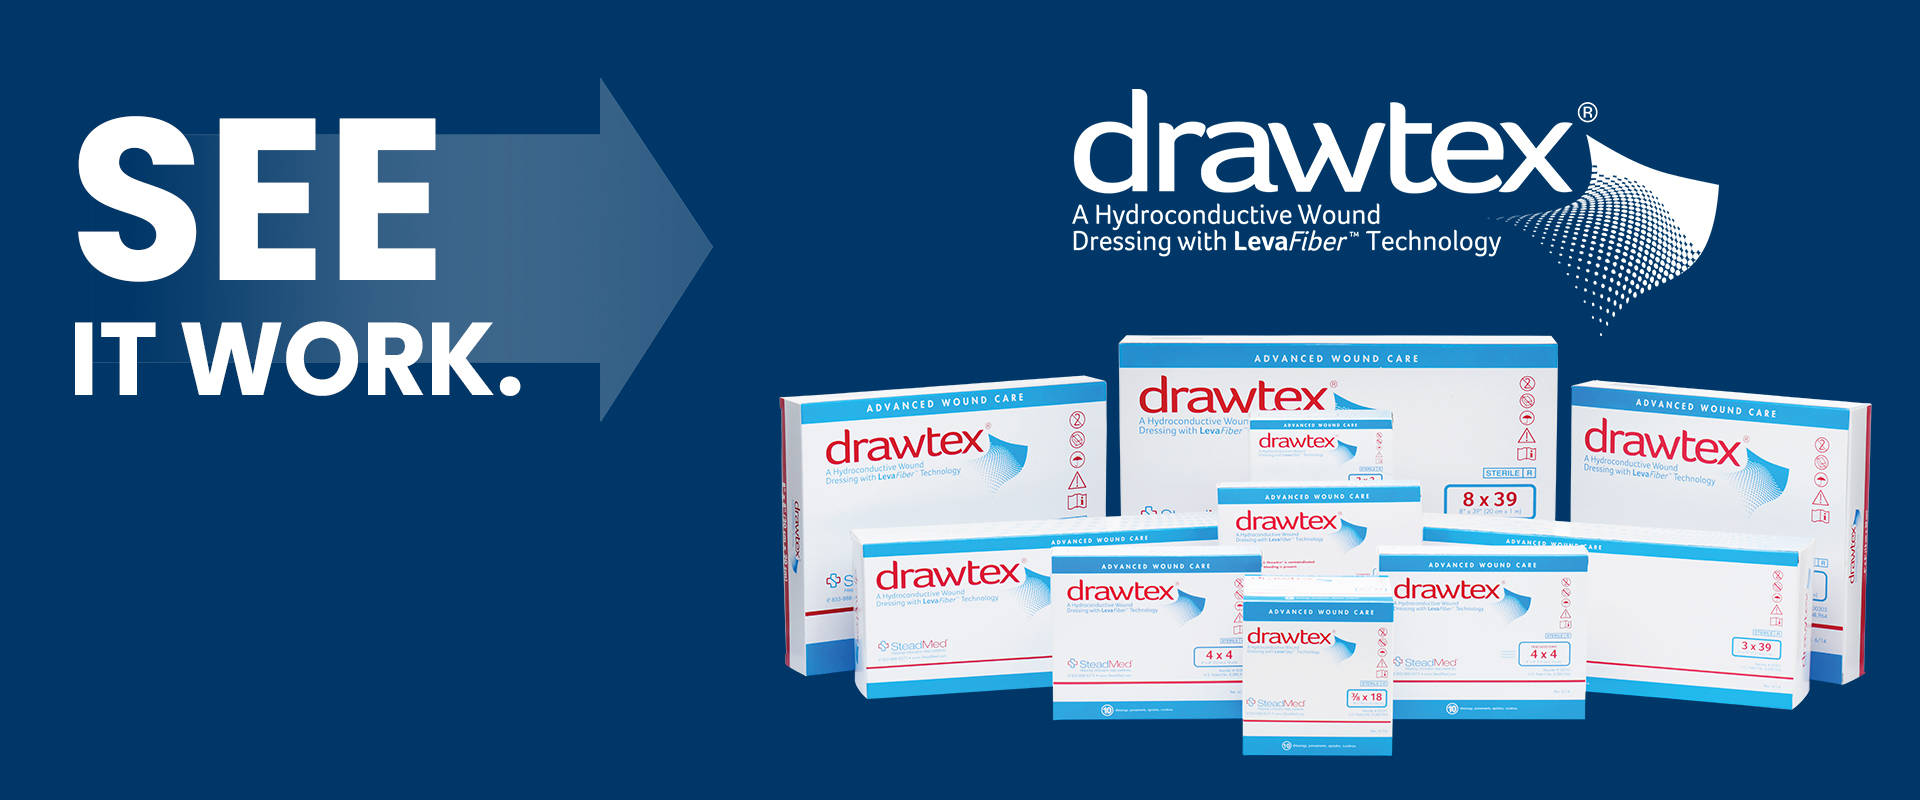 SEE IT WORK. drawtex. A Hydroconductive Wound Dressing with LevaFiber Technology.